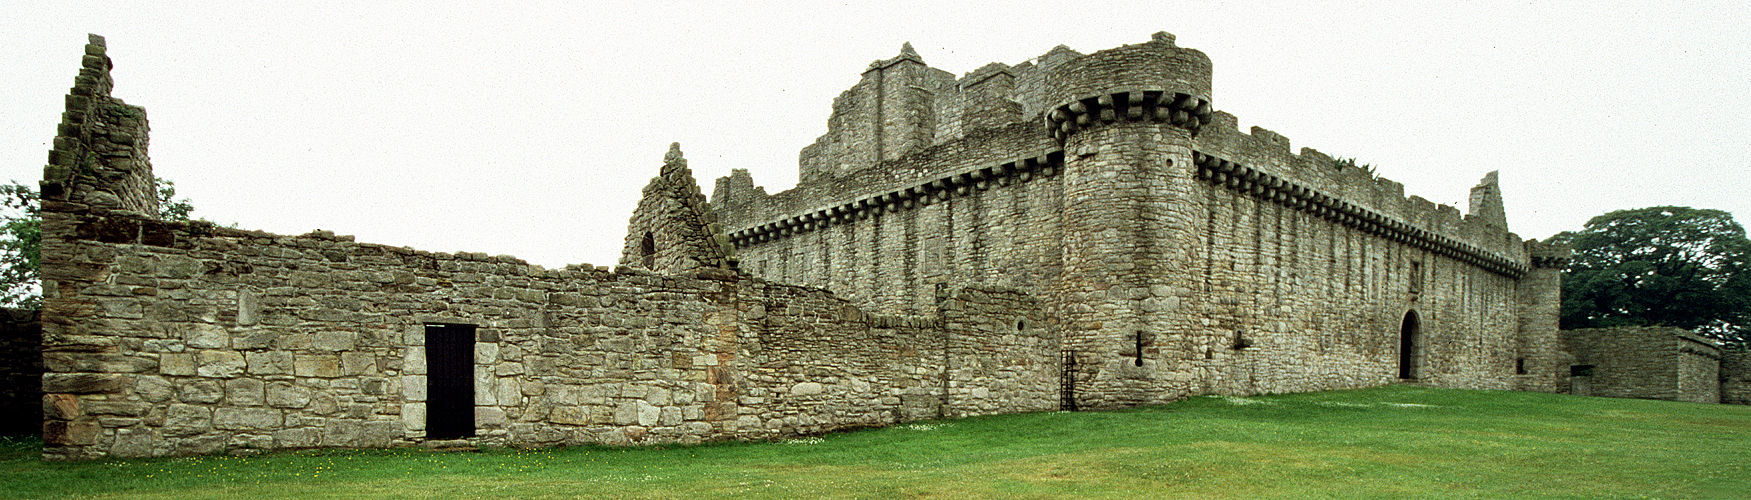 Photo panoramique du château de Craigmillar